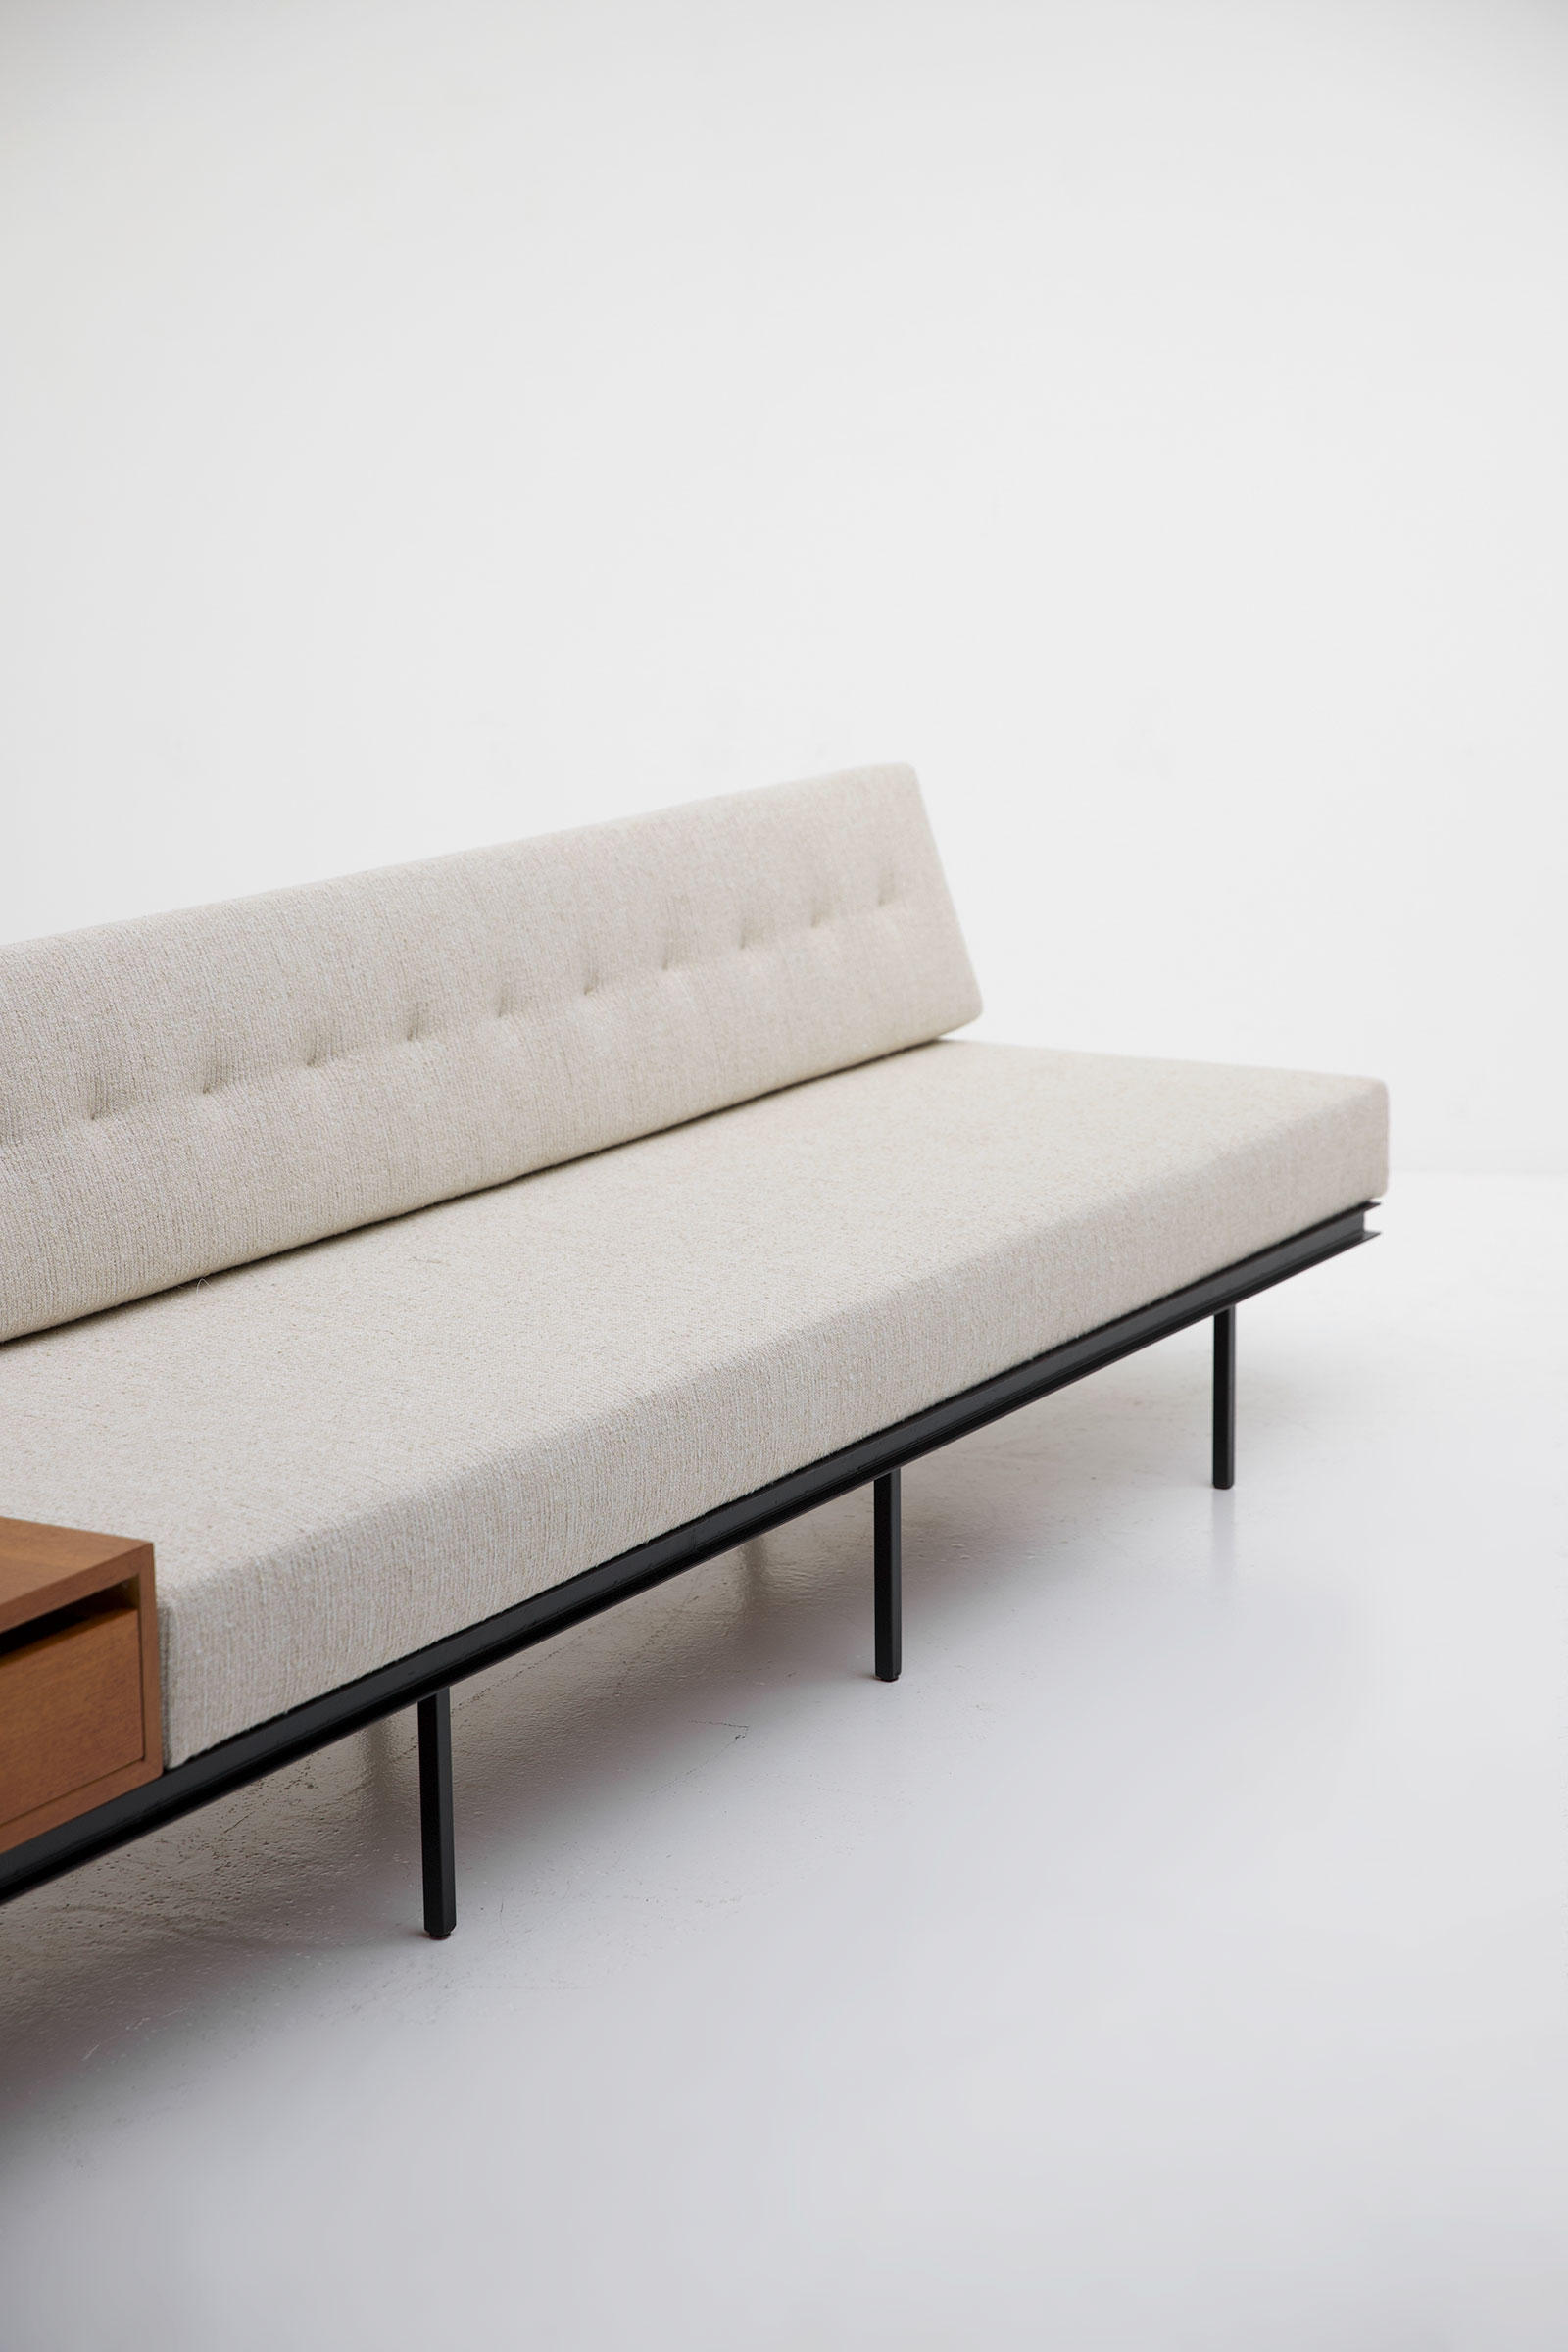 Florence Knoll sofa Cabinet